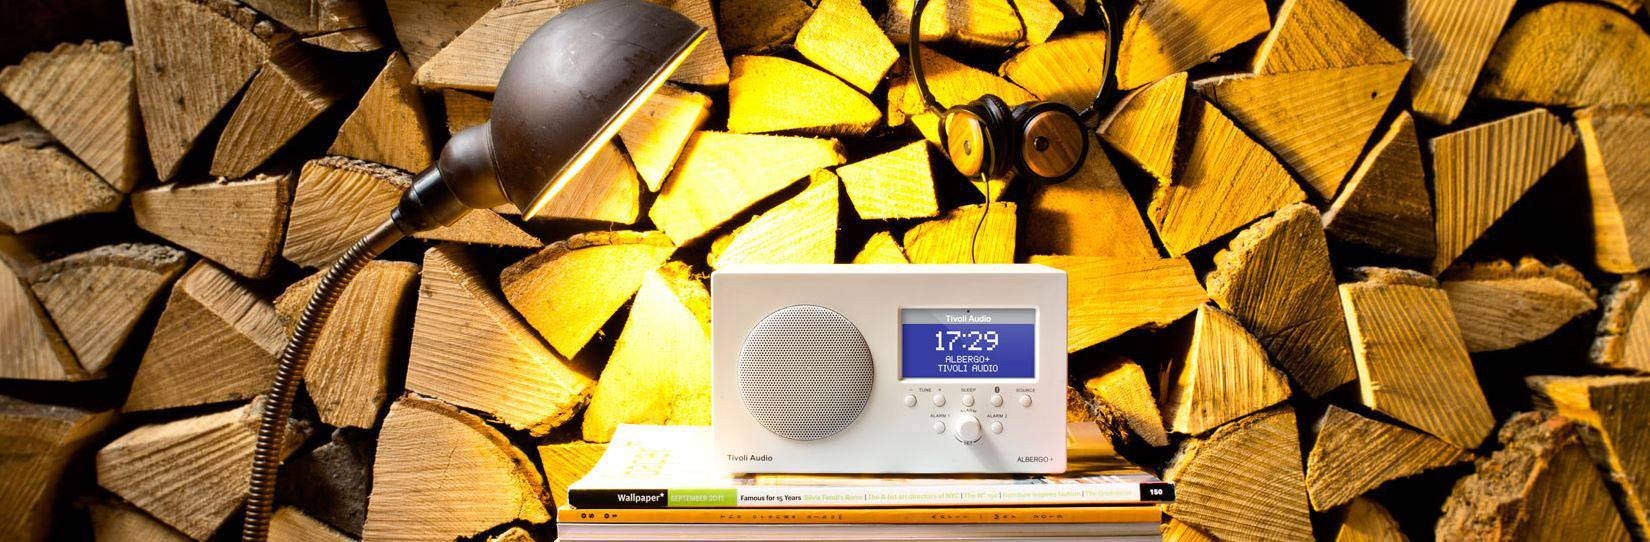 Tivoli Audio Yellow Tivoli Audio Albergo Dab Radio Alarm Clock Aux Bluetooth Dab Fm Graphite